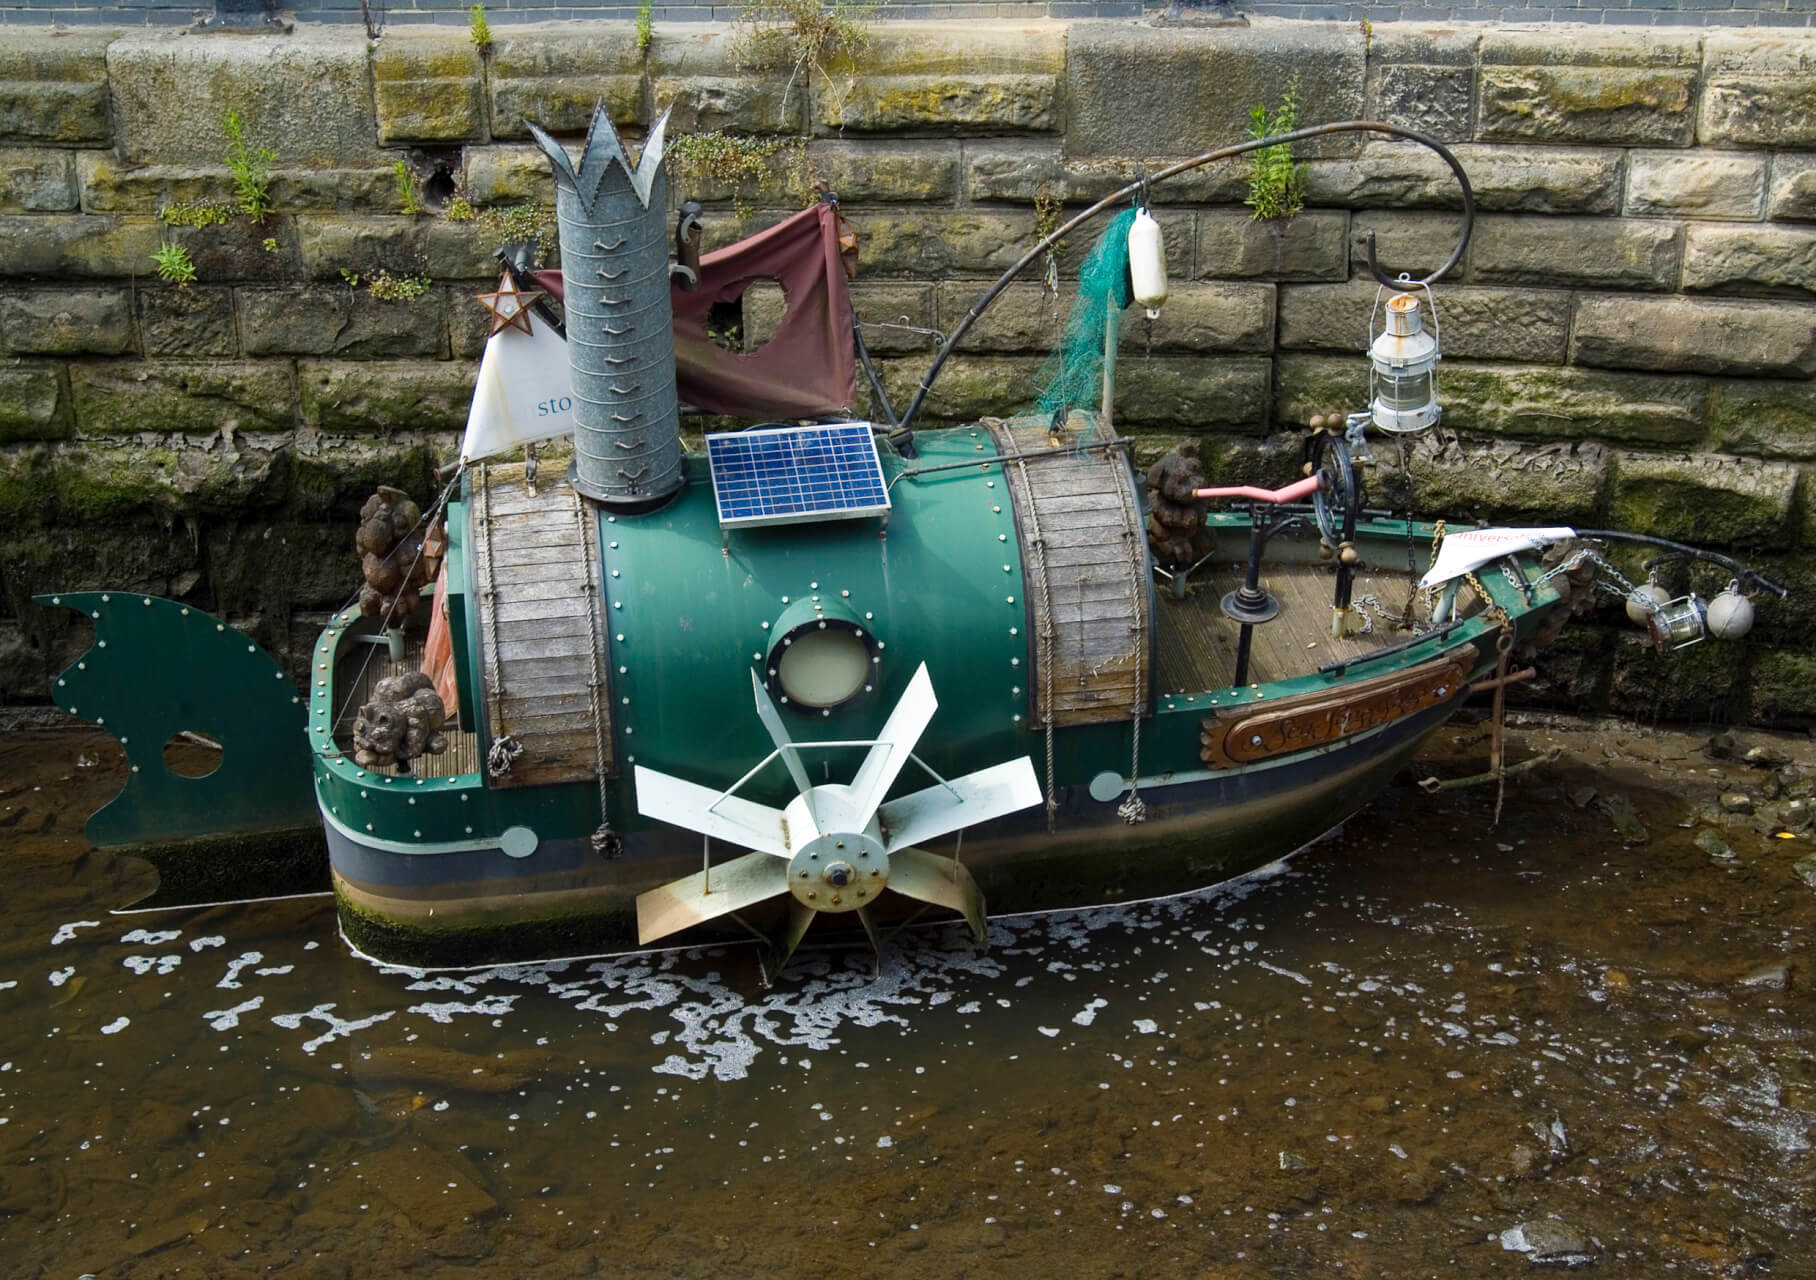 """Sea Song Sang"", a magical story boat in Newcastle upon Tyne, UK, by Chinch Gryniewicz"